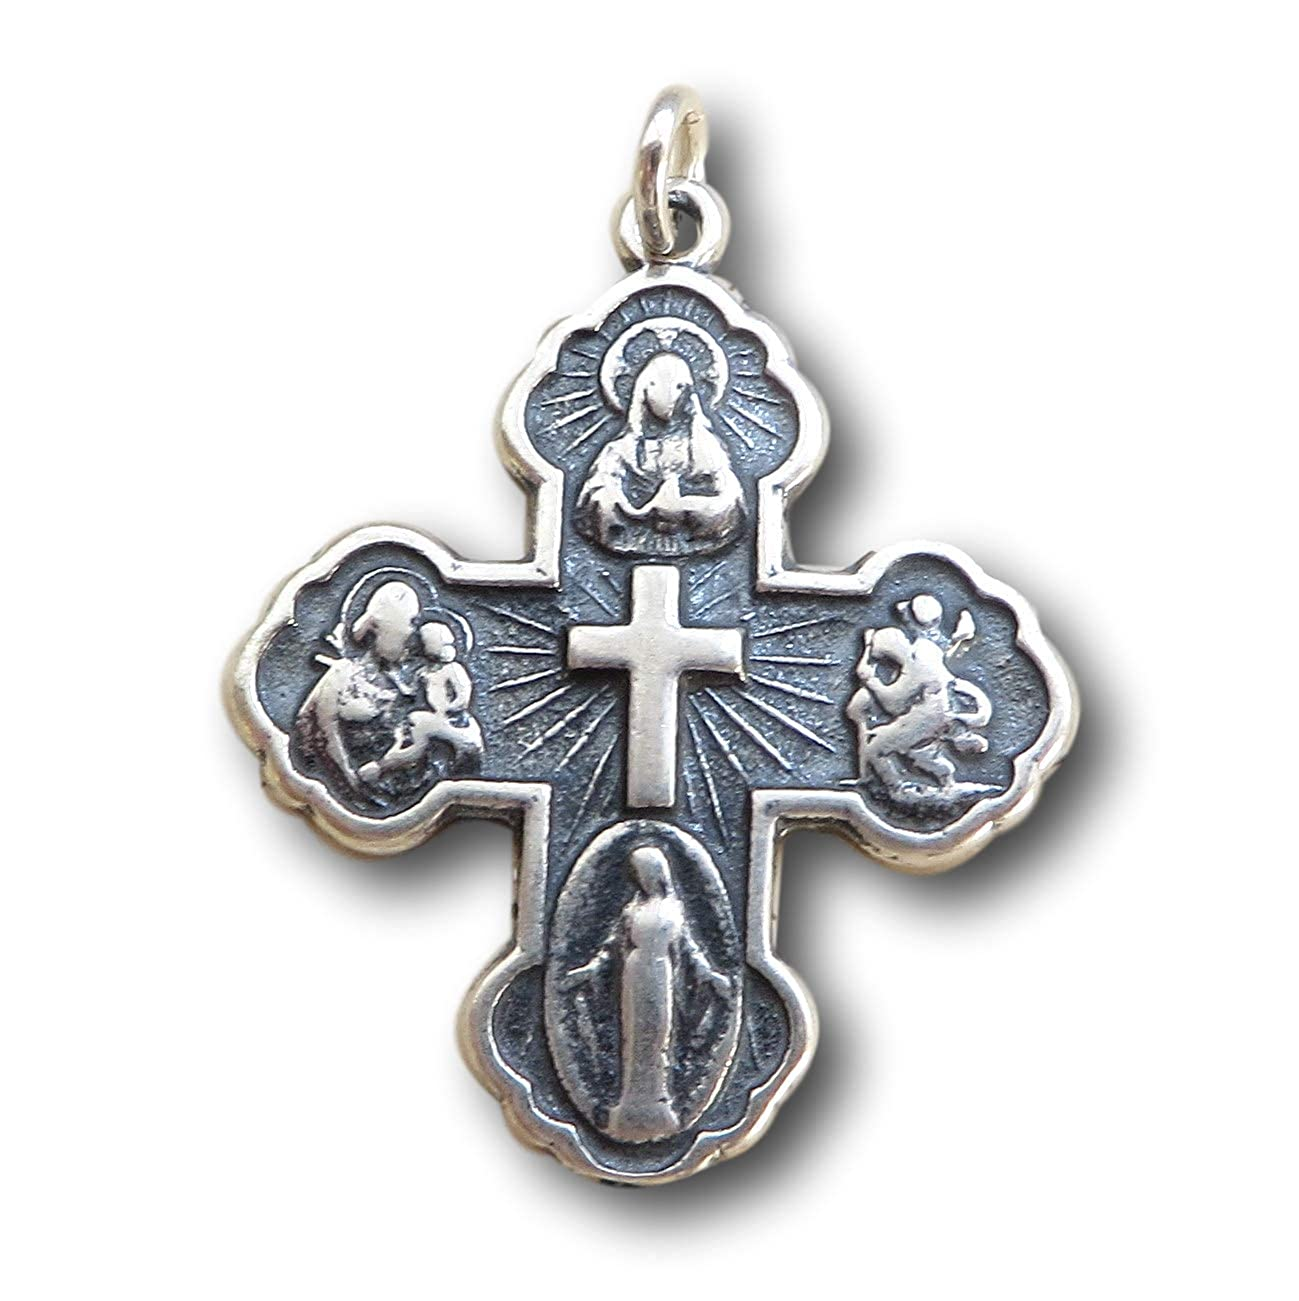 Antique Reproduction Sterling Silver Four Way Cross